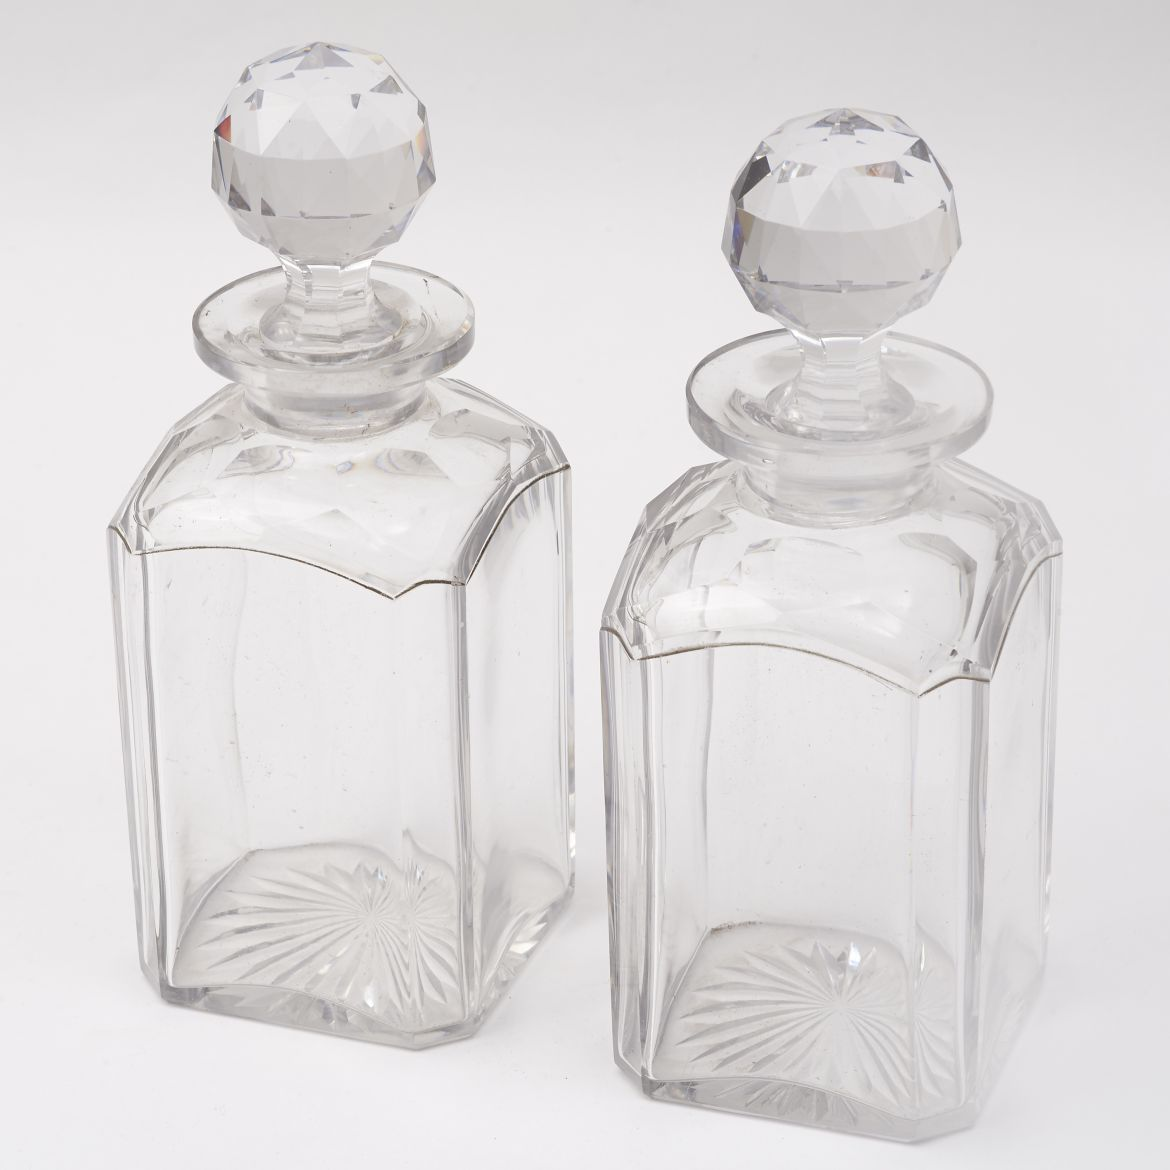 Edwardian Whisky Decanters